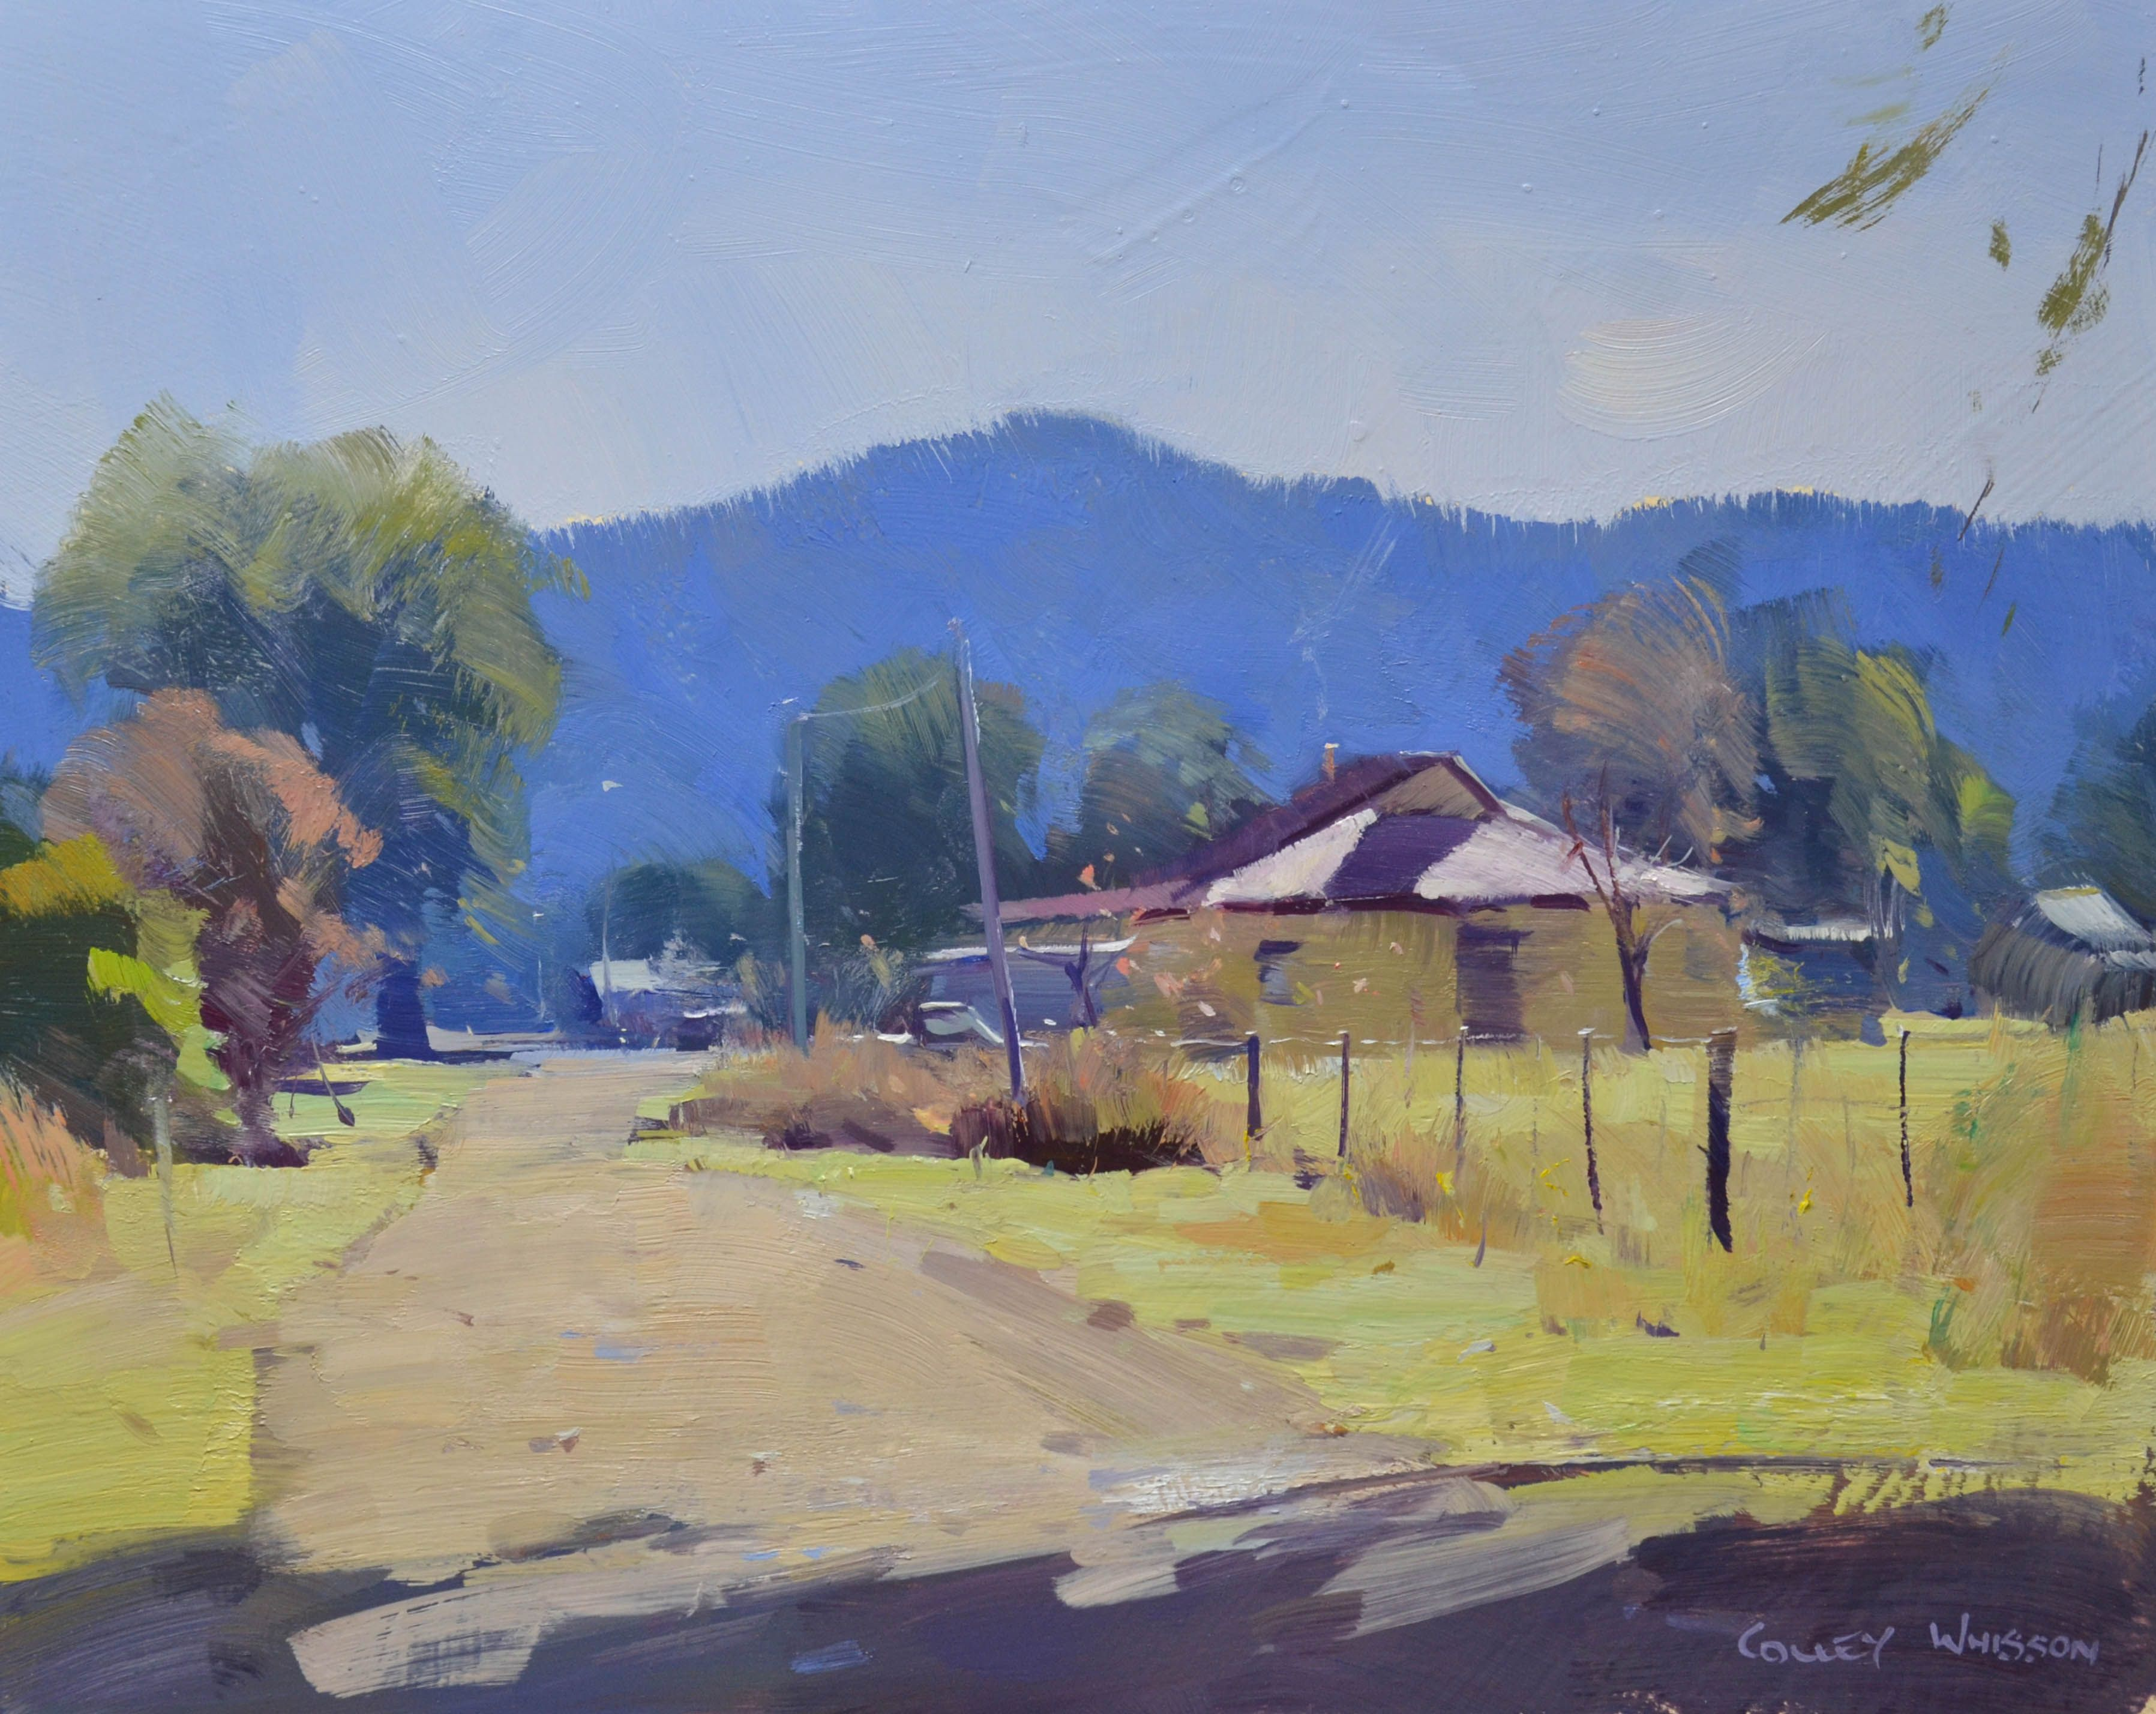 Colley Whisson Taao Landscape Painting Tutorial Oil Painting Landscape Australian Painting